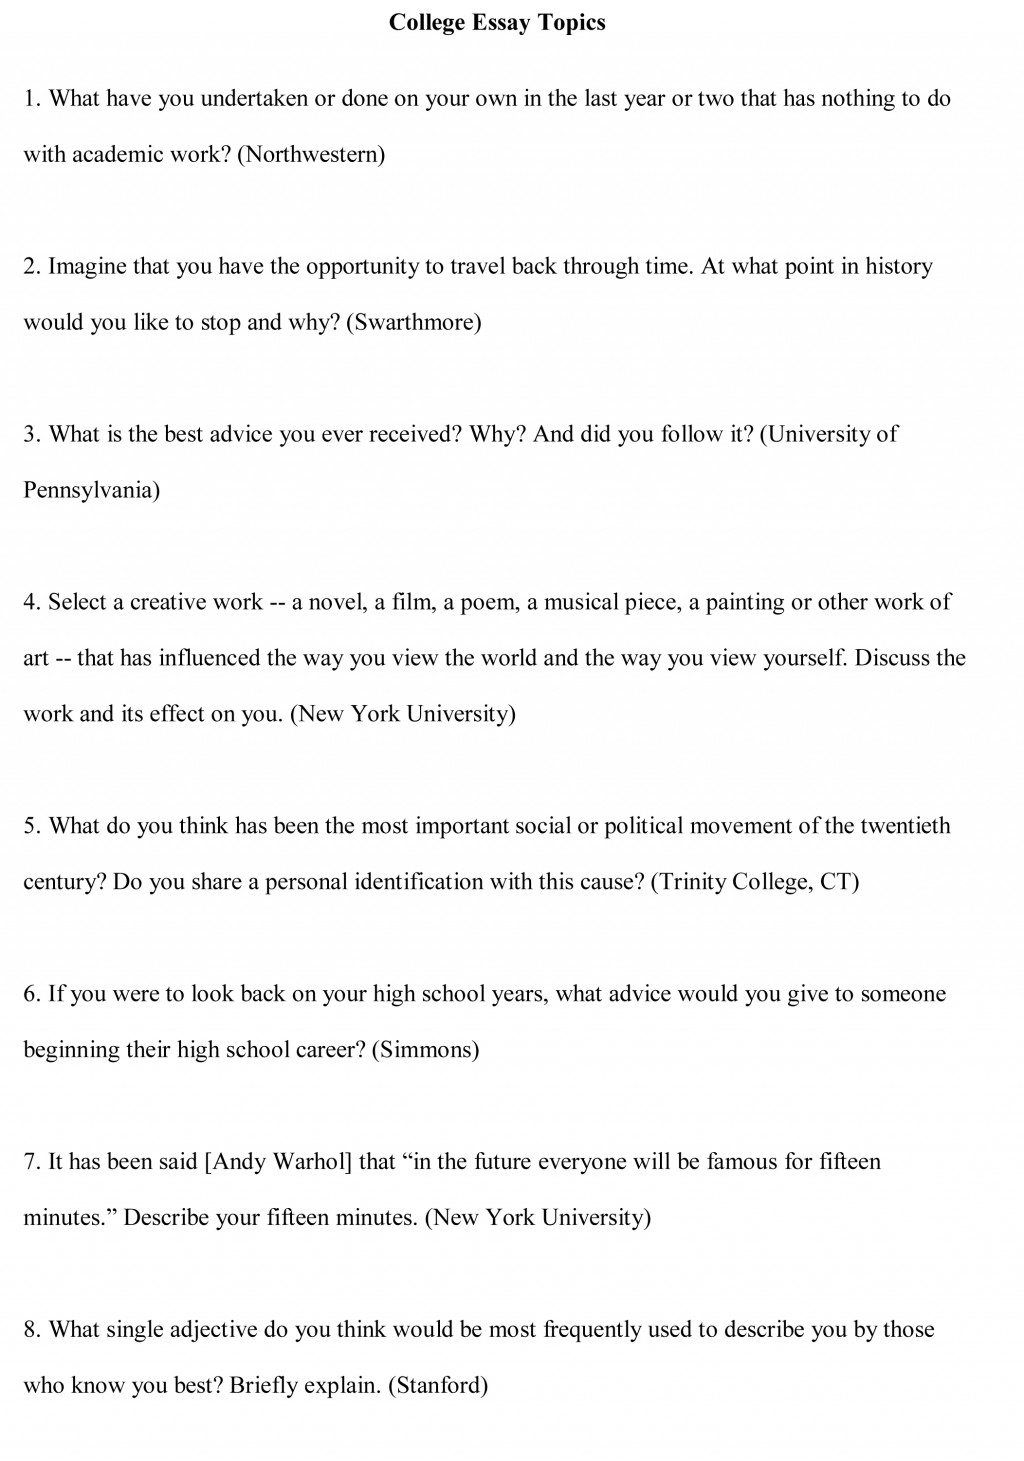 003 College Essay Topics Free Sample1 Prompts Impressive Texas Application 2018 Ideas Large